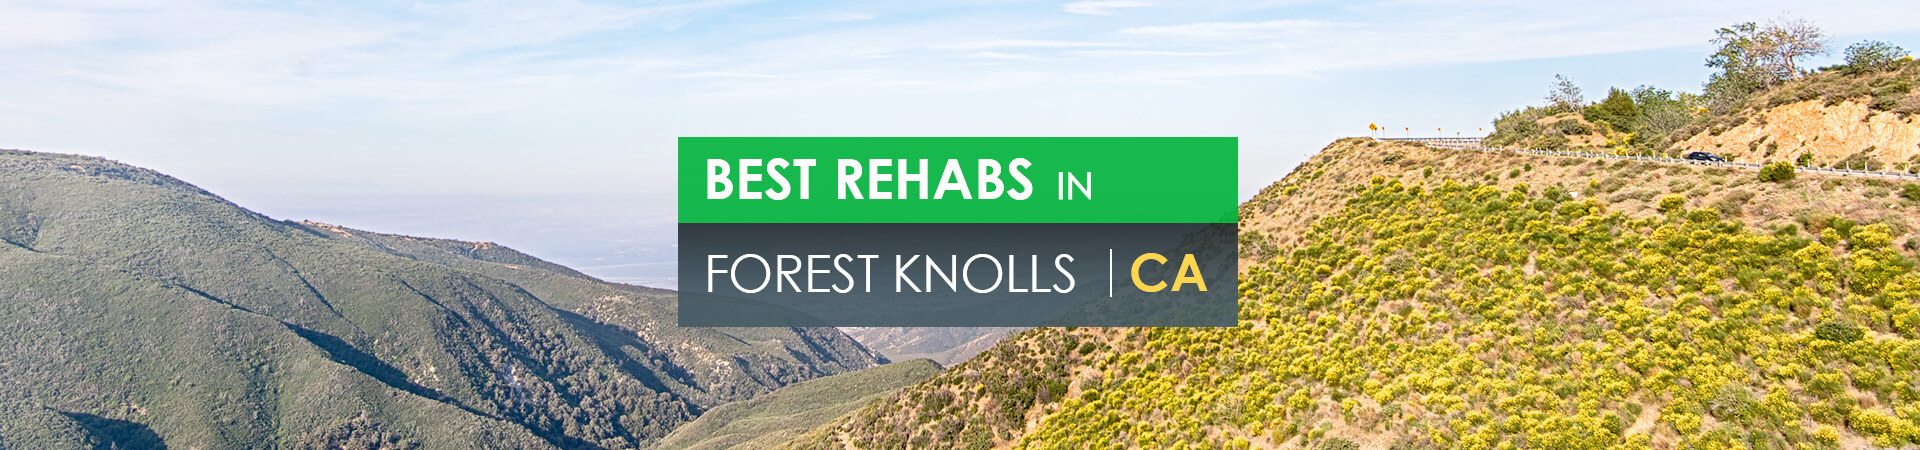 Best rehabs in Forest Knolls, CA